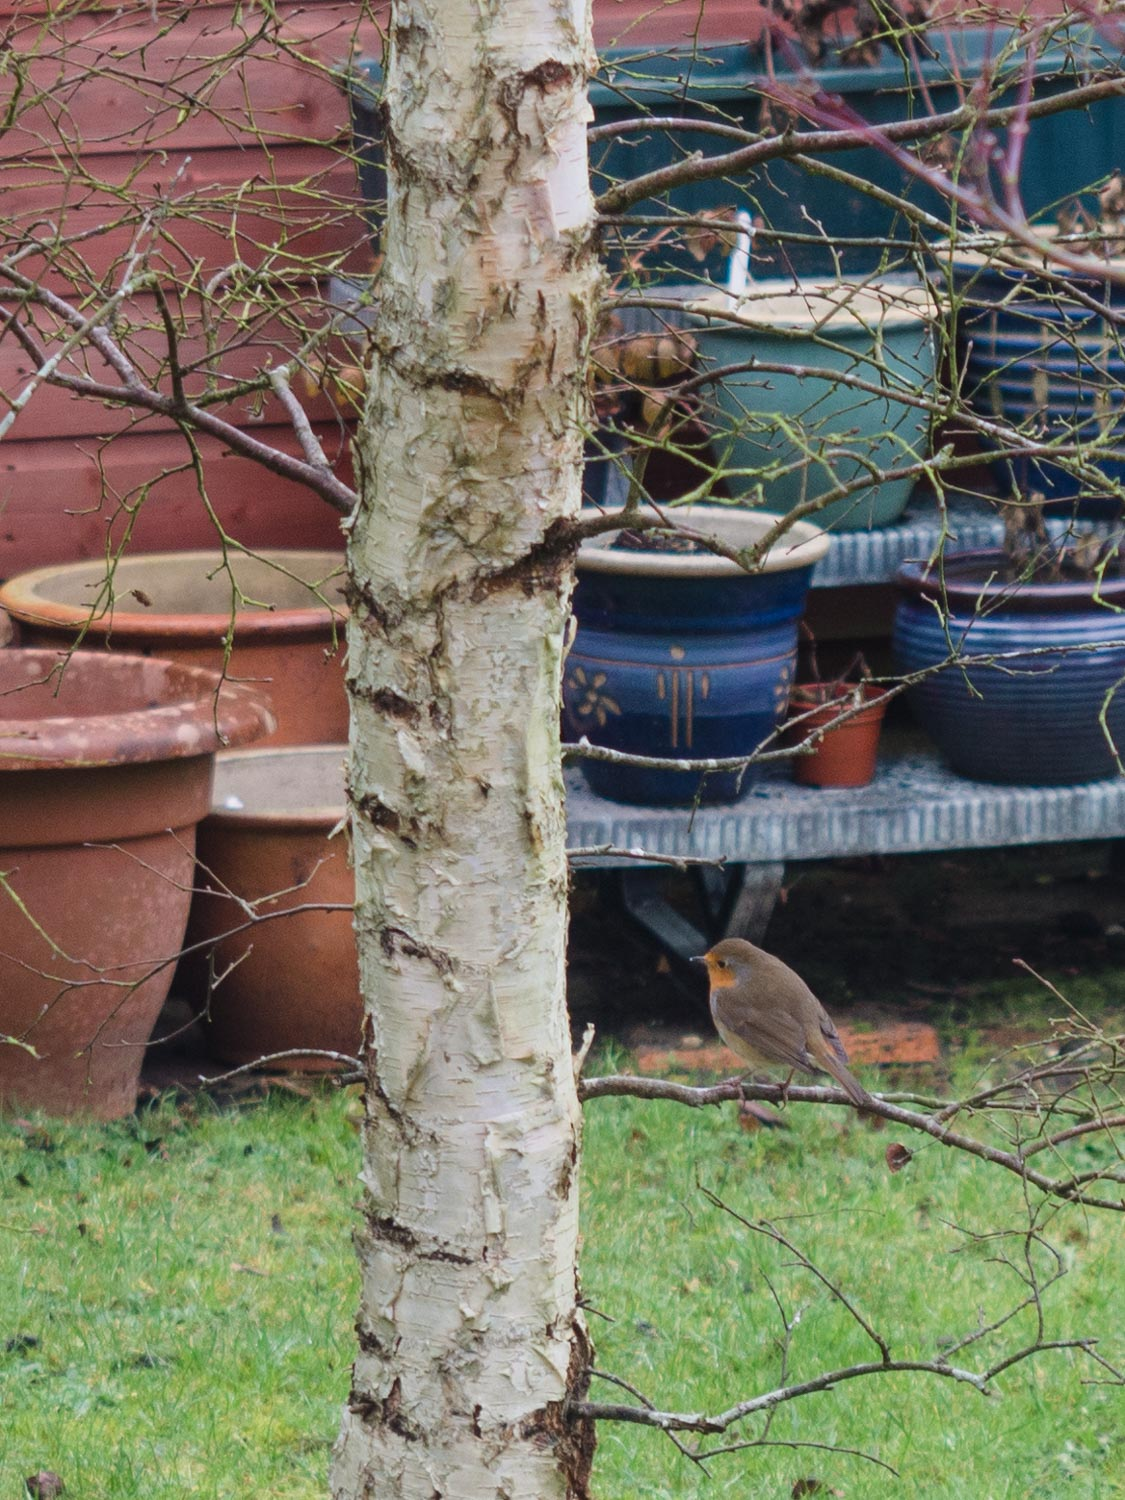 Apparently 'this' little robin visits my Dad's garden every day. Hard to catch on camera though!